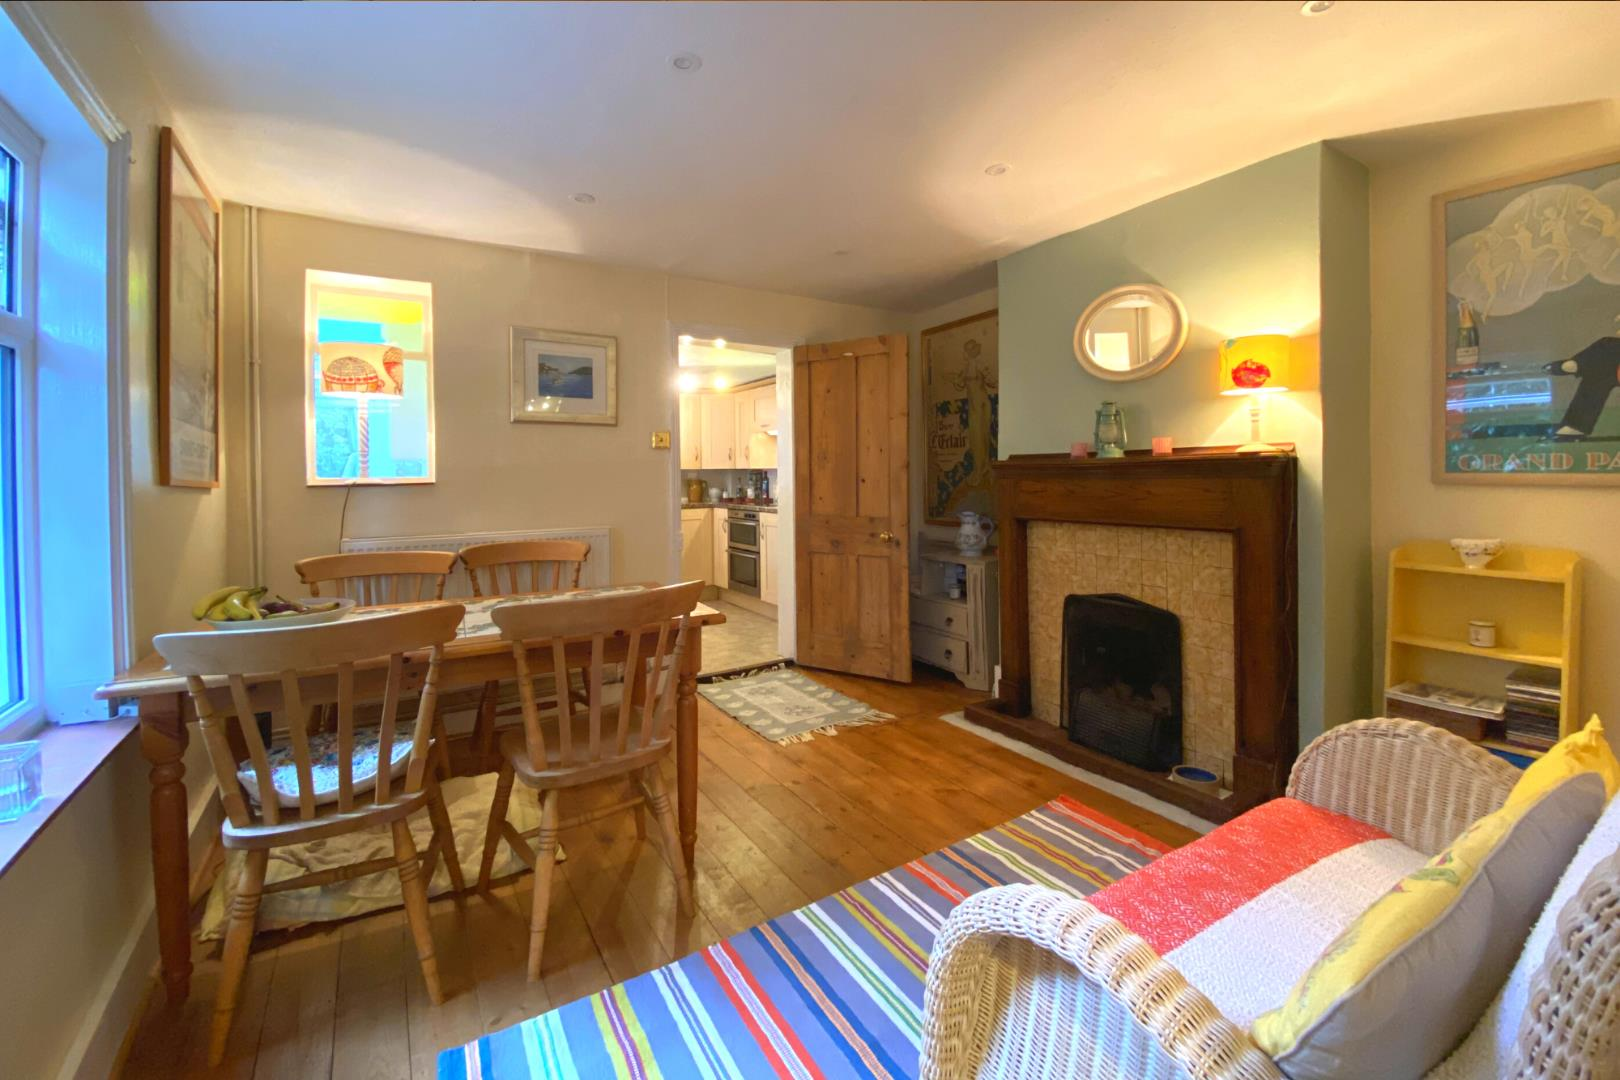 2 bed house for sale in Wonersh  - Property Image 3